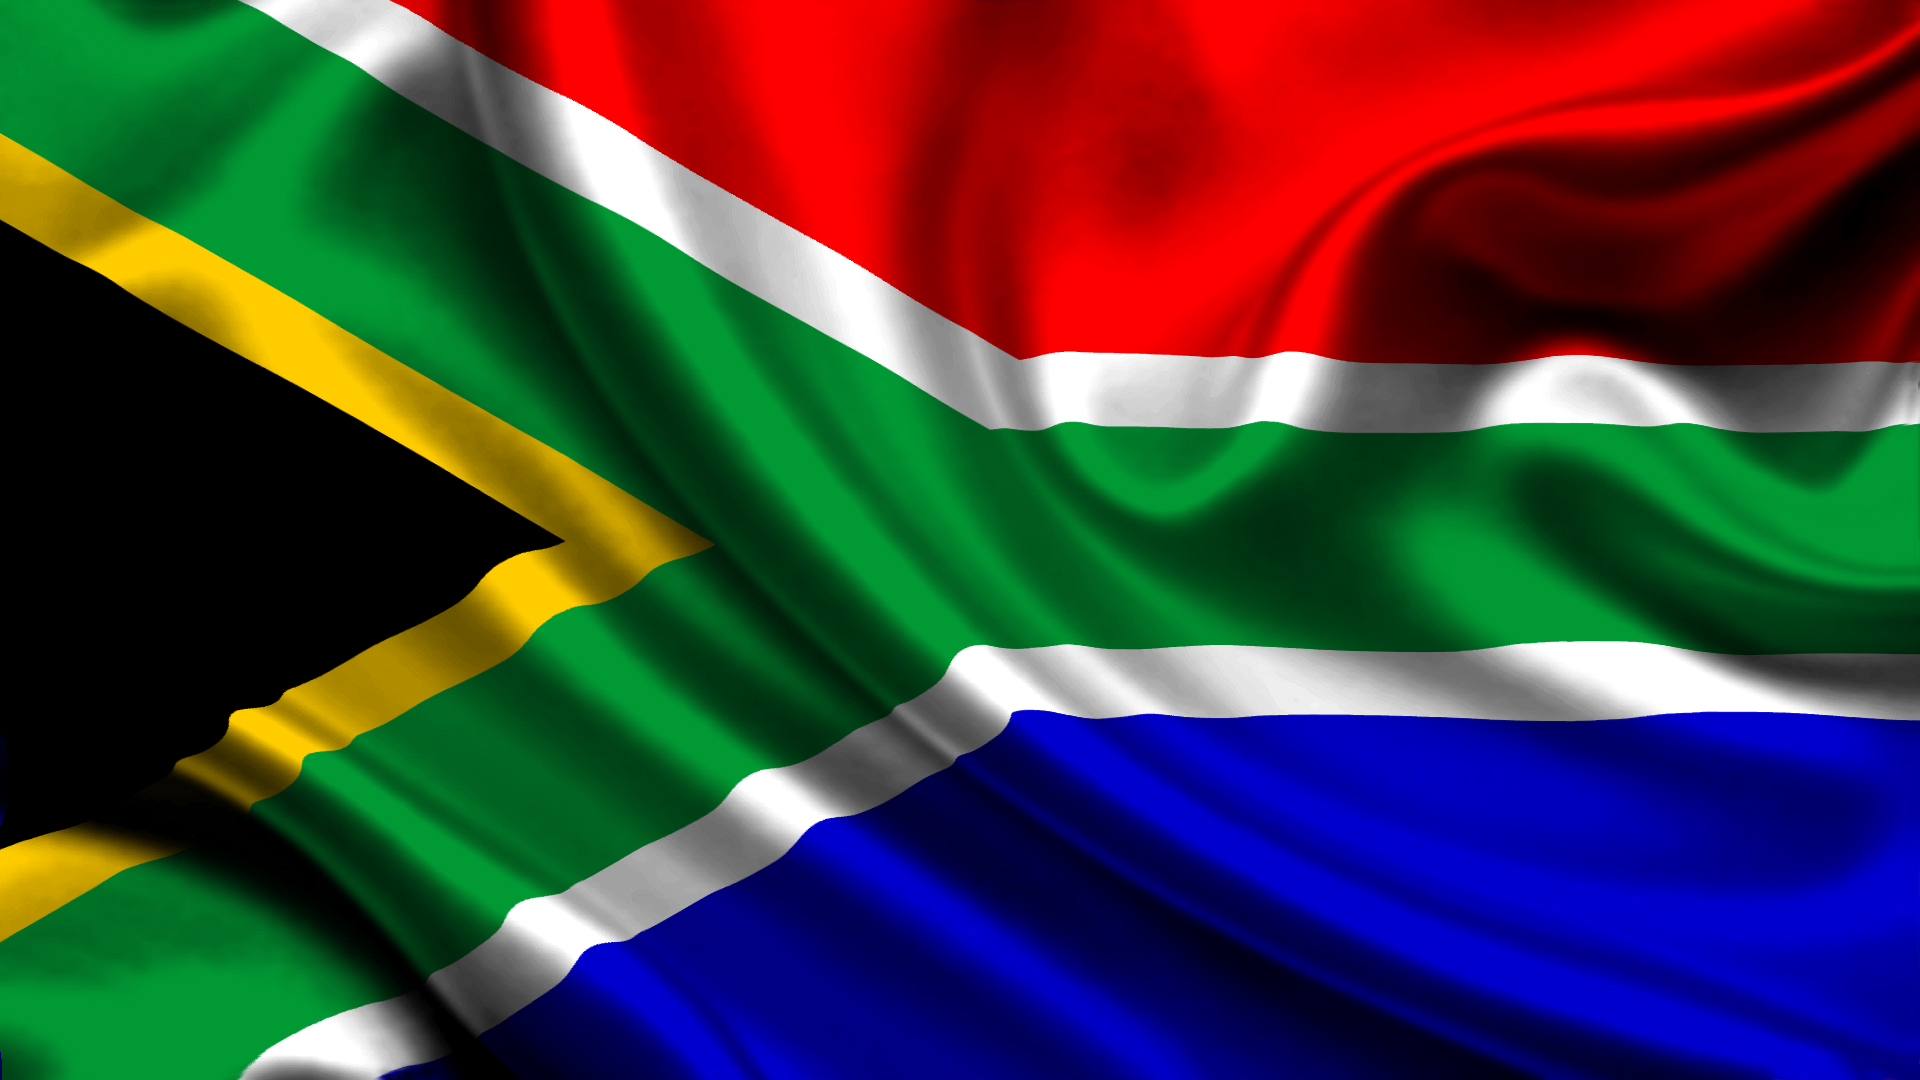 South Africa Flag HD Wallpaper Desktop 9691 Wallpaper ForWallpapers 1920x1080